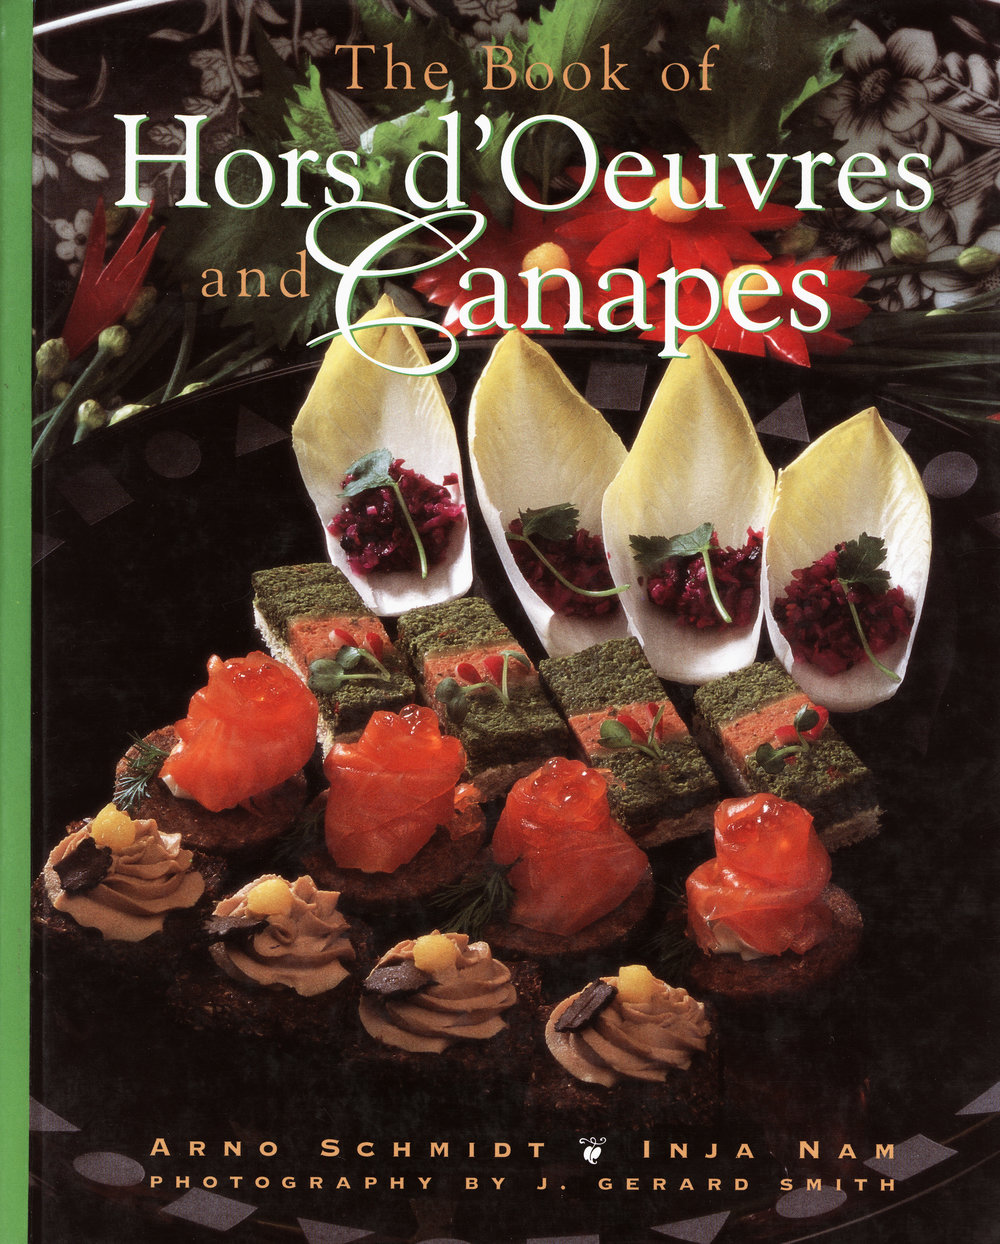 Hors d'Oeuvres and Canapes